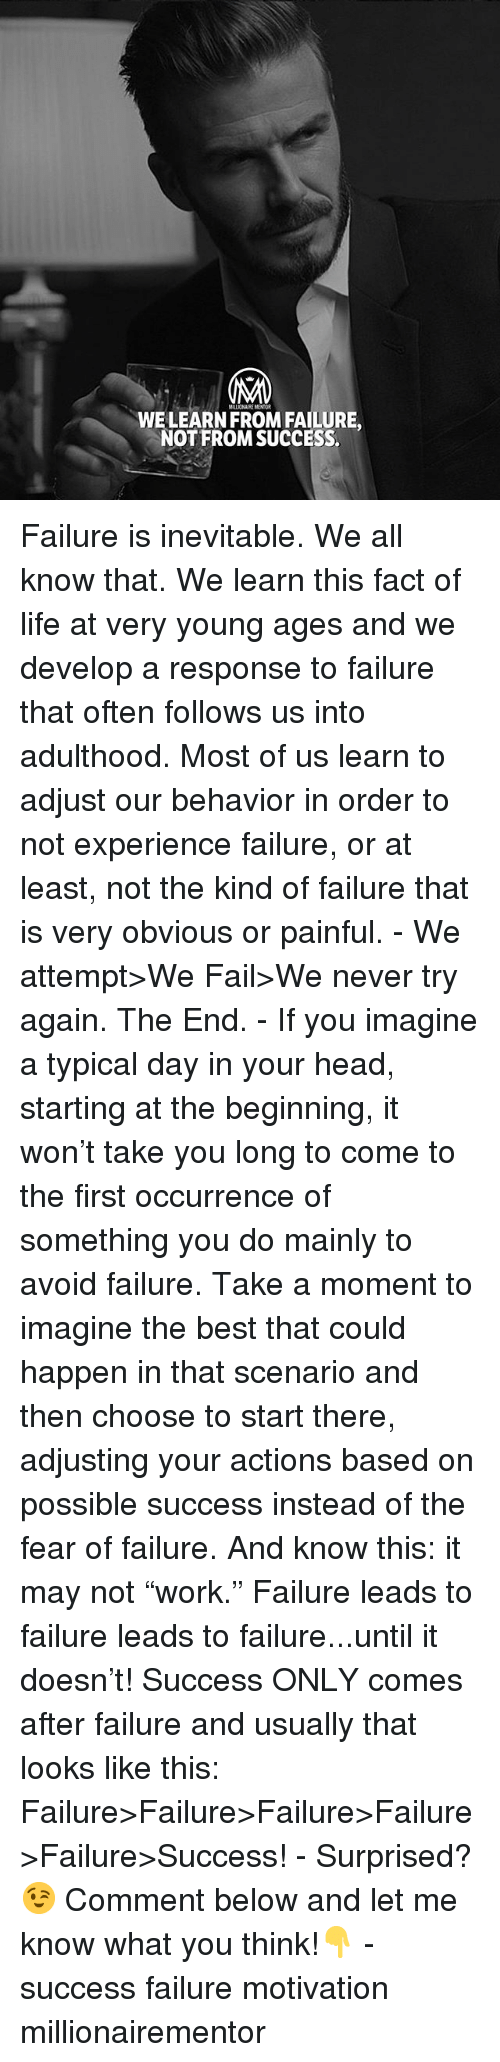 "Fail, Head, and Life: MALICNAIRE MENTOR  WELEARN FROM FAILURE,  NOT FROM SUCCESS Failure is inevitable. We all know that. We learn this fact of life at very young ages and we develop a response to failure that often follows us into adulthood. Most of us learn to adjust our behavior in order to not experience failure, or at least, not the kind of failure that is very obvious or painful. - We attempt>We Fail>We never try again. The End. - If you imagine a typical day in your head, starting at the beginning, it won't take you long to come to the first occurrence of something you do mainly to avoid failure. Take a moment to imagine the best that could happen in that scenario and then choose to start there, adjusting your actions based on possible success instead of the fear of failure. And know this: it may not ""work."" Failure leads to failure leads to failure...until it doesn't! Success ONLY comes after failure and usually that looks like this: Failure>Failure>Failure>Failure>Failure>Success! - Surprised?😉 Comment below and let me know what you think!👇 - success failure motivation millionairementor"